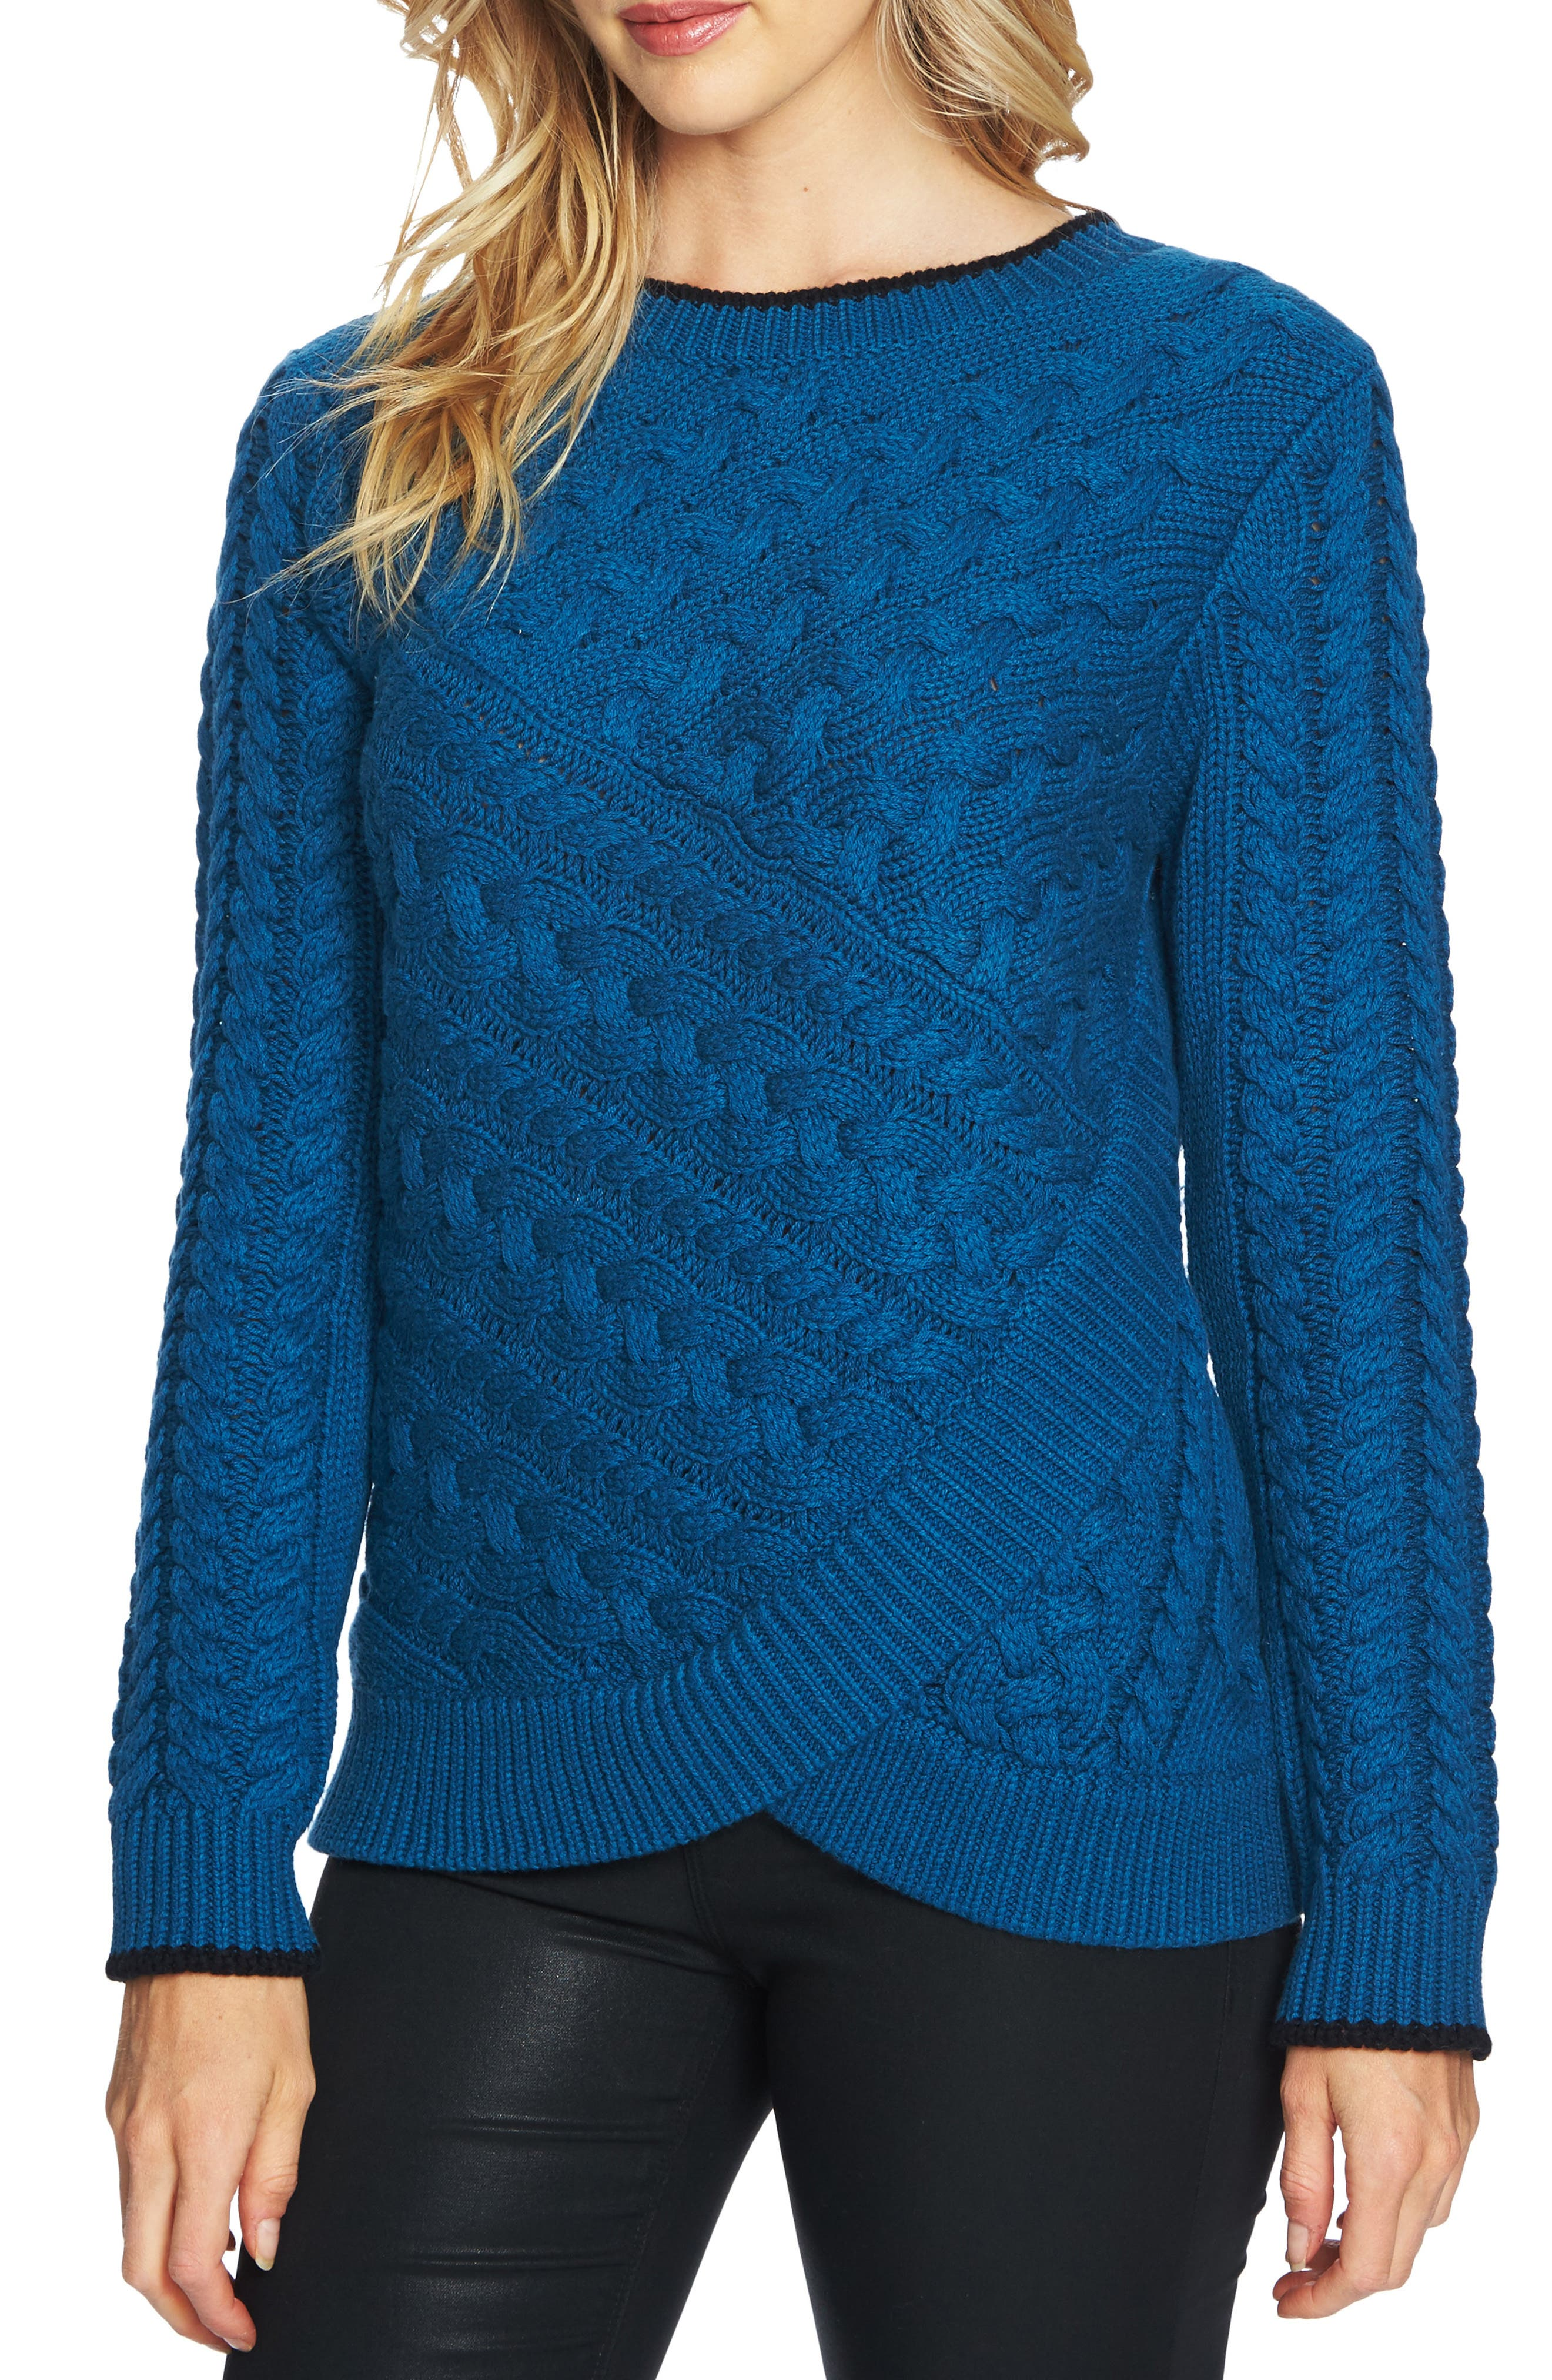 Alternate Image 1 Selected - CeCe Double Layer Cable Stitch Sweater